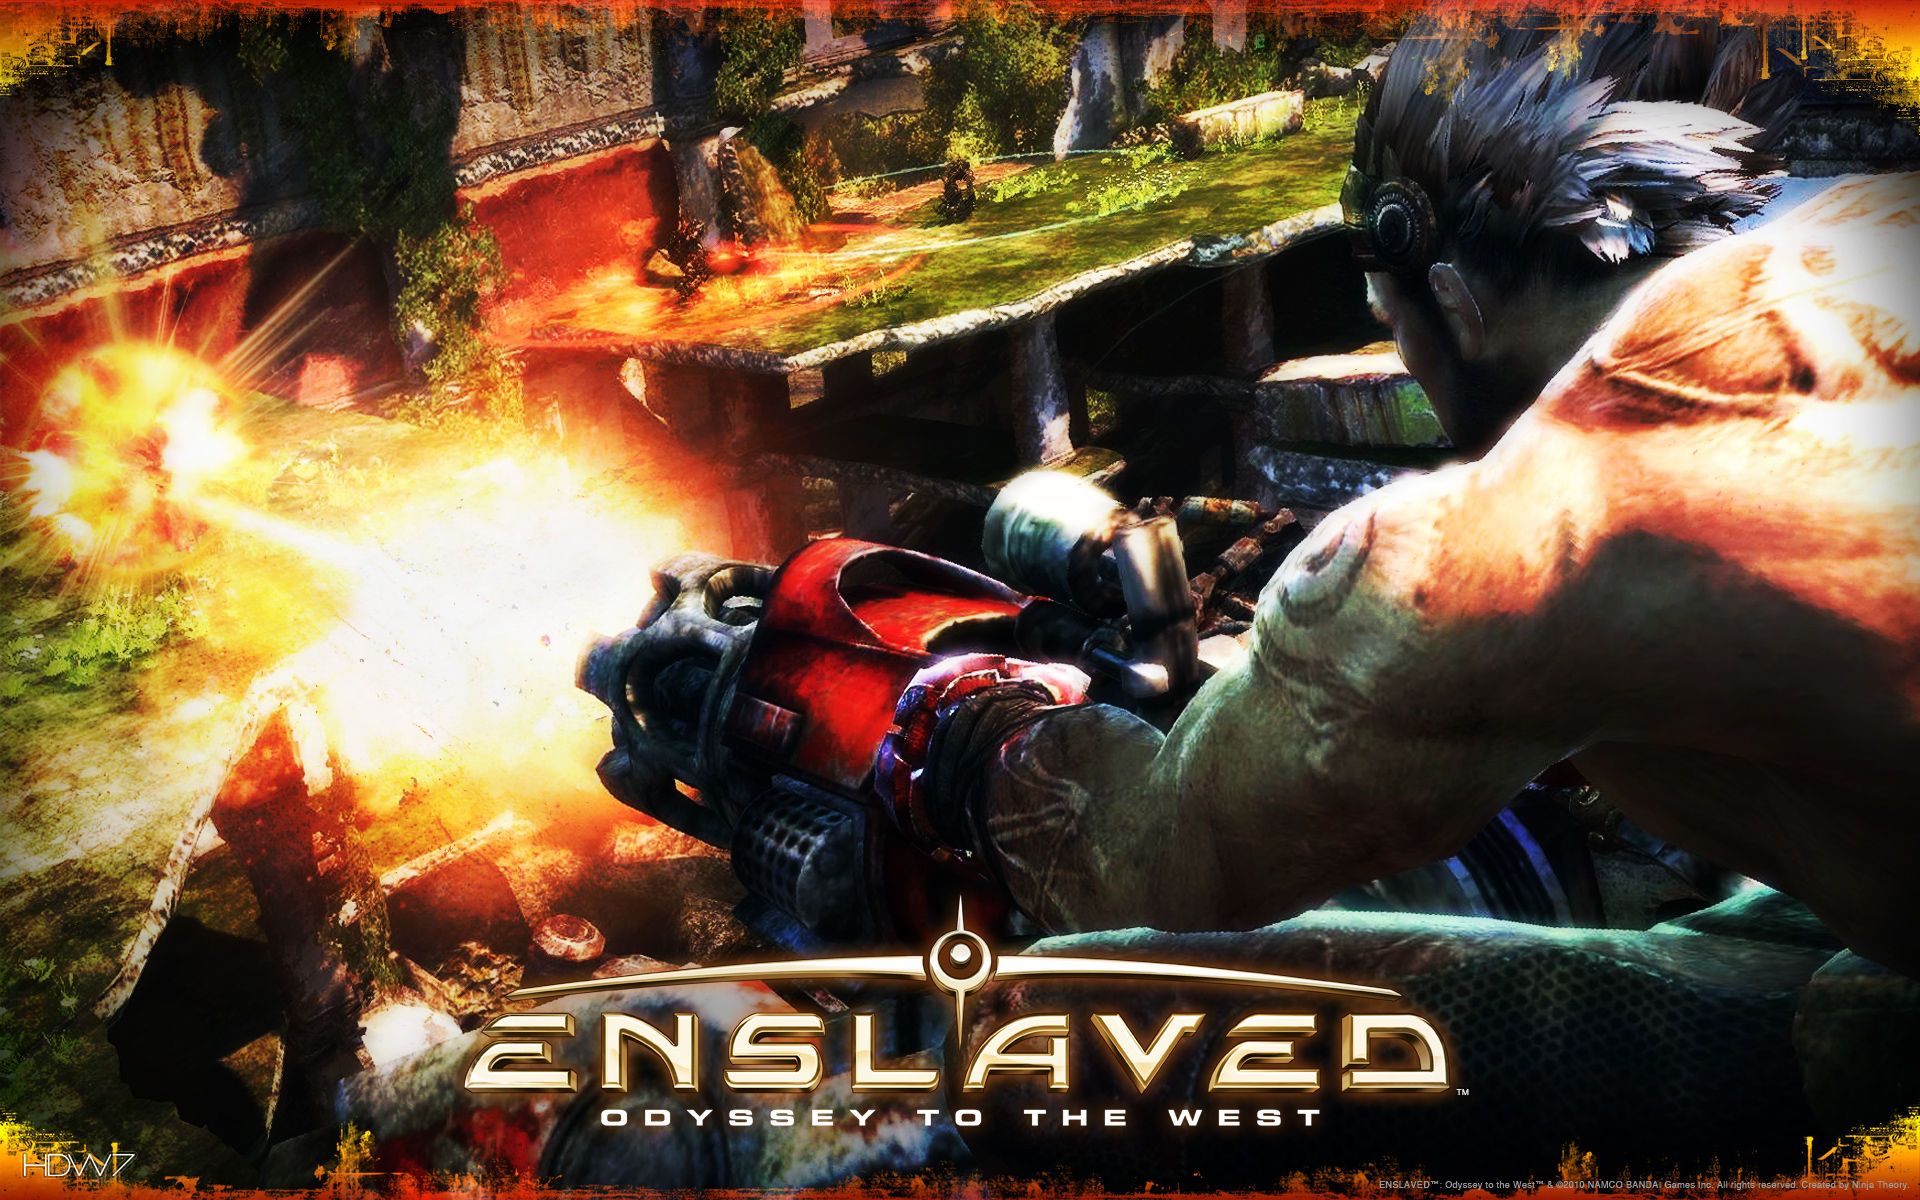 enslaved monkey firing enemy widescreen wallpaper